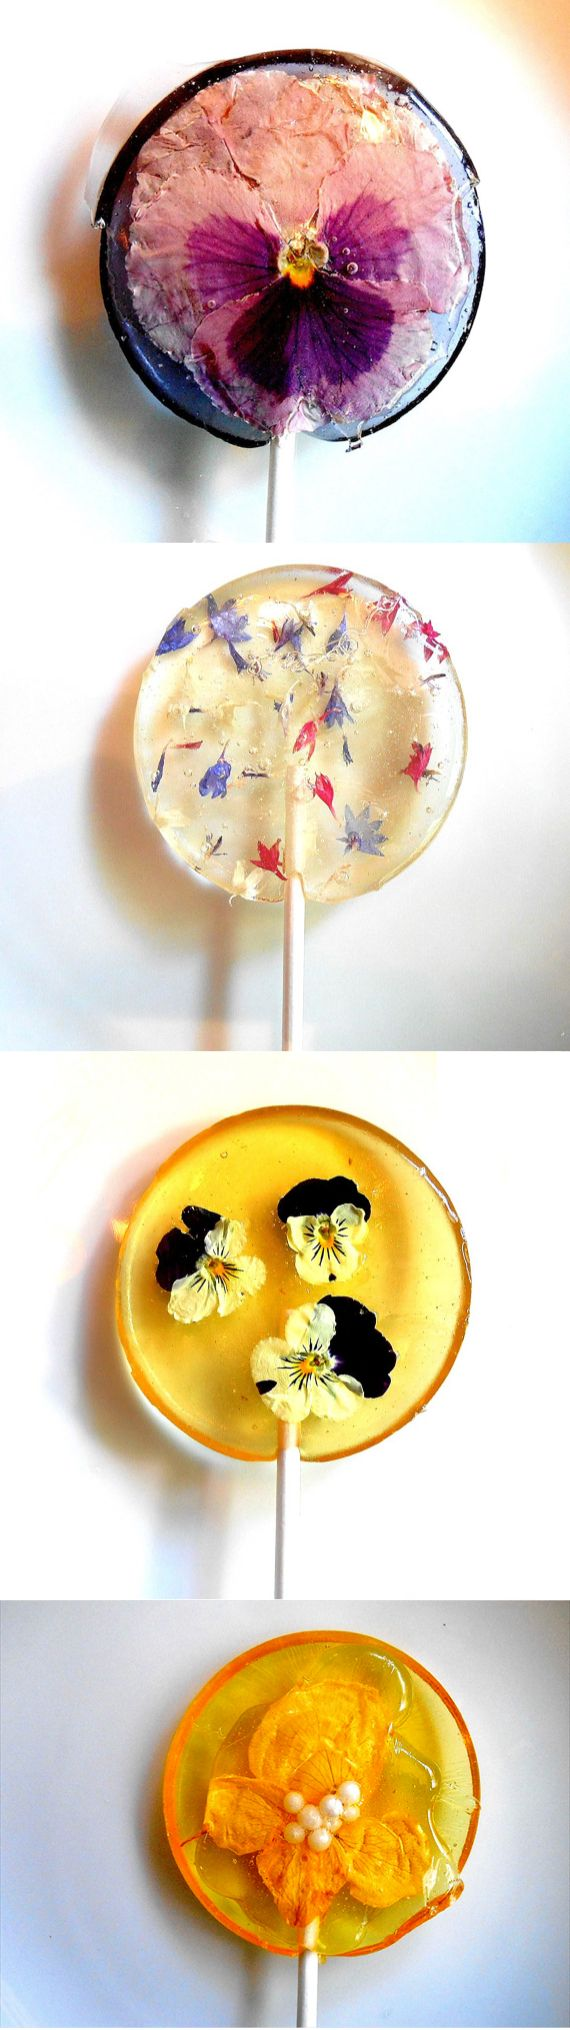 Love this idea for lollipops with real, edible flowers in them!